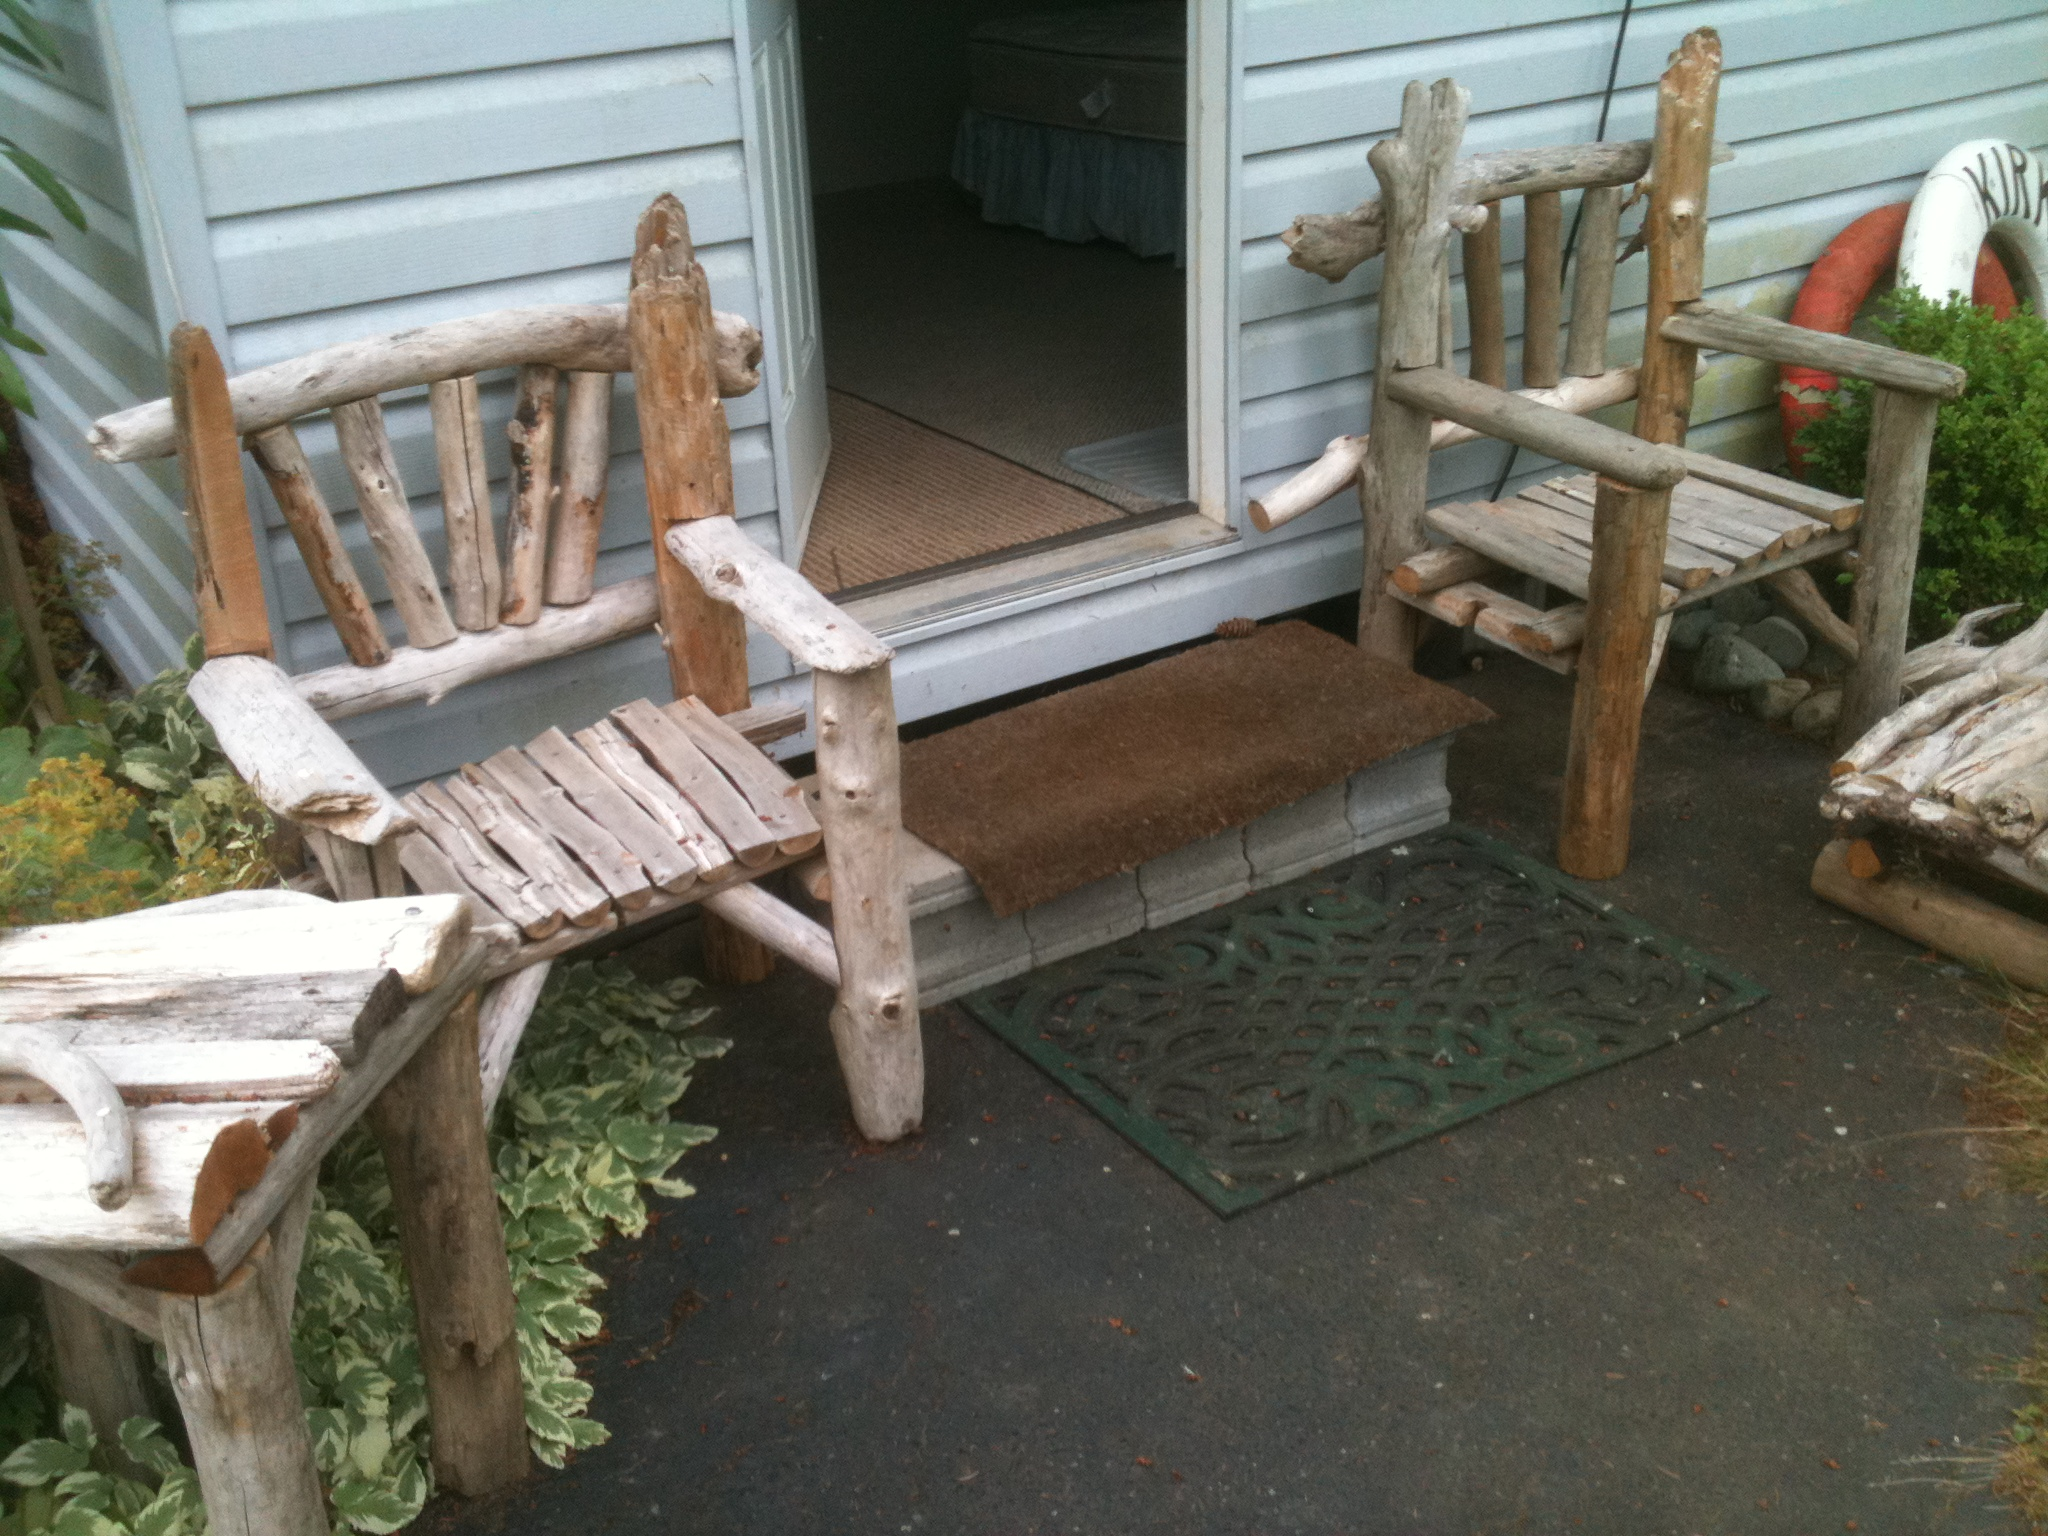 Mikes Driftwood Driftwood Furniture and Bird Feeders